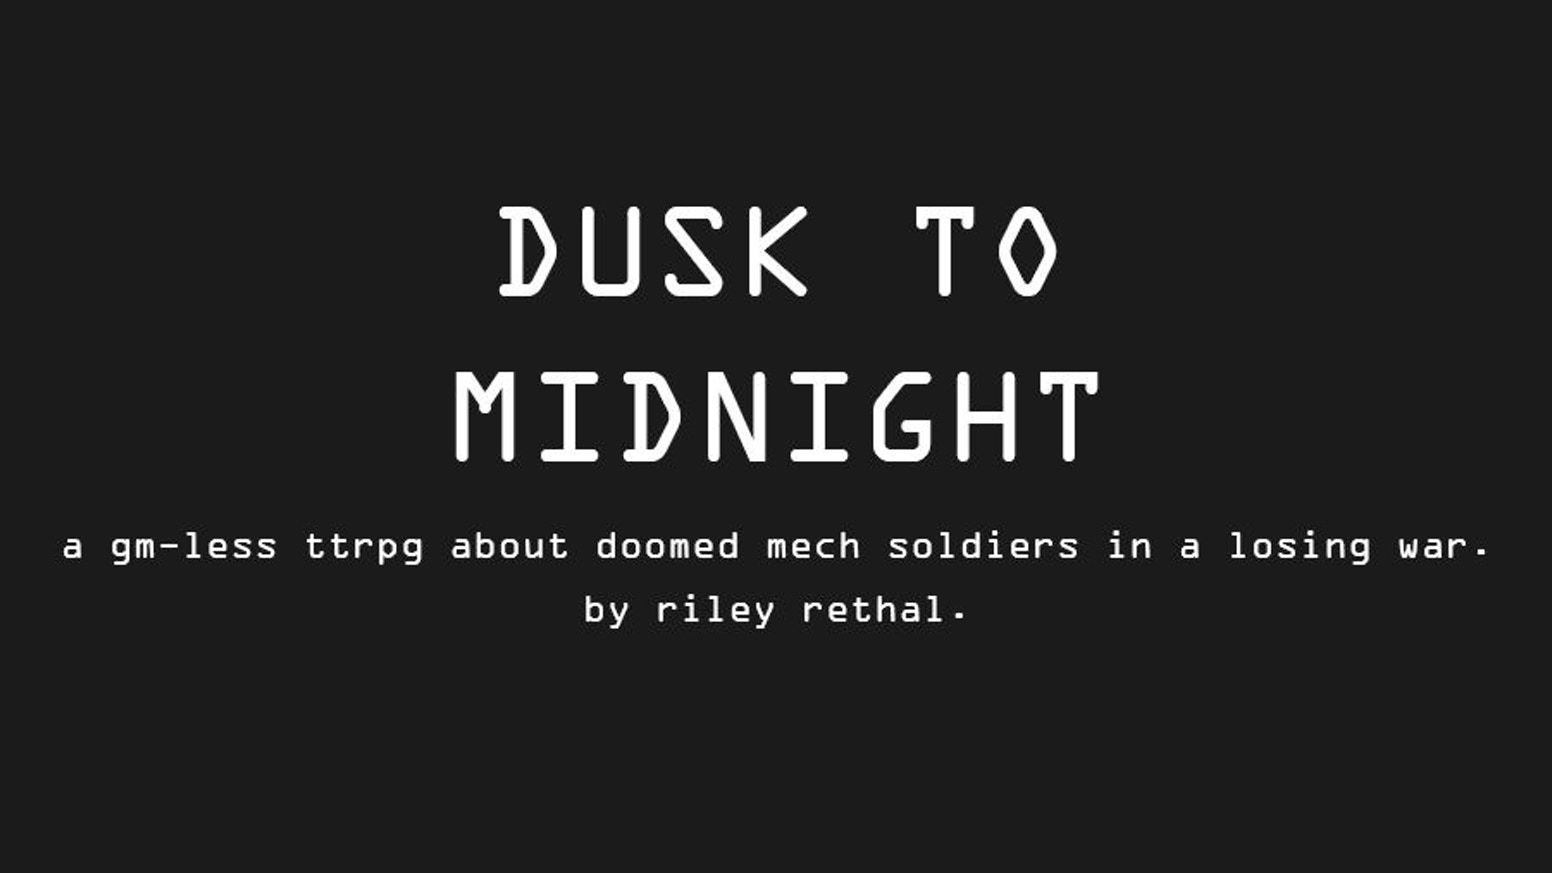 A gm-less ttrpg about doomed soldiers in a losing war.